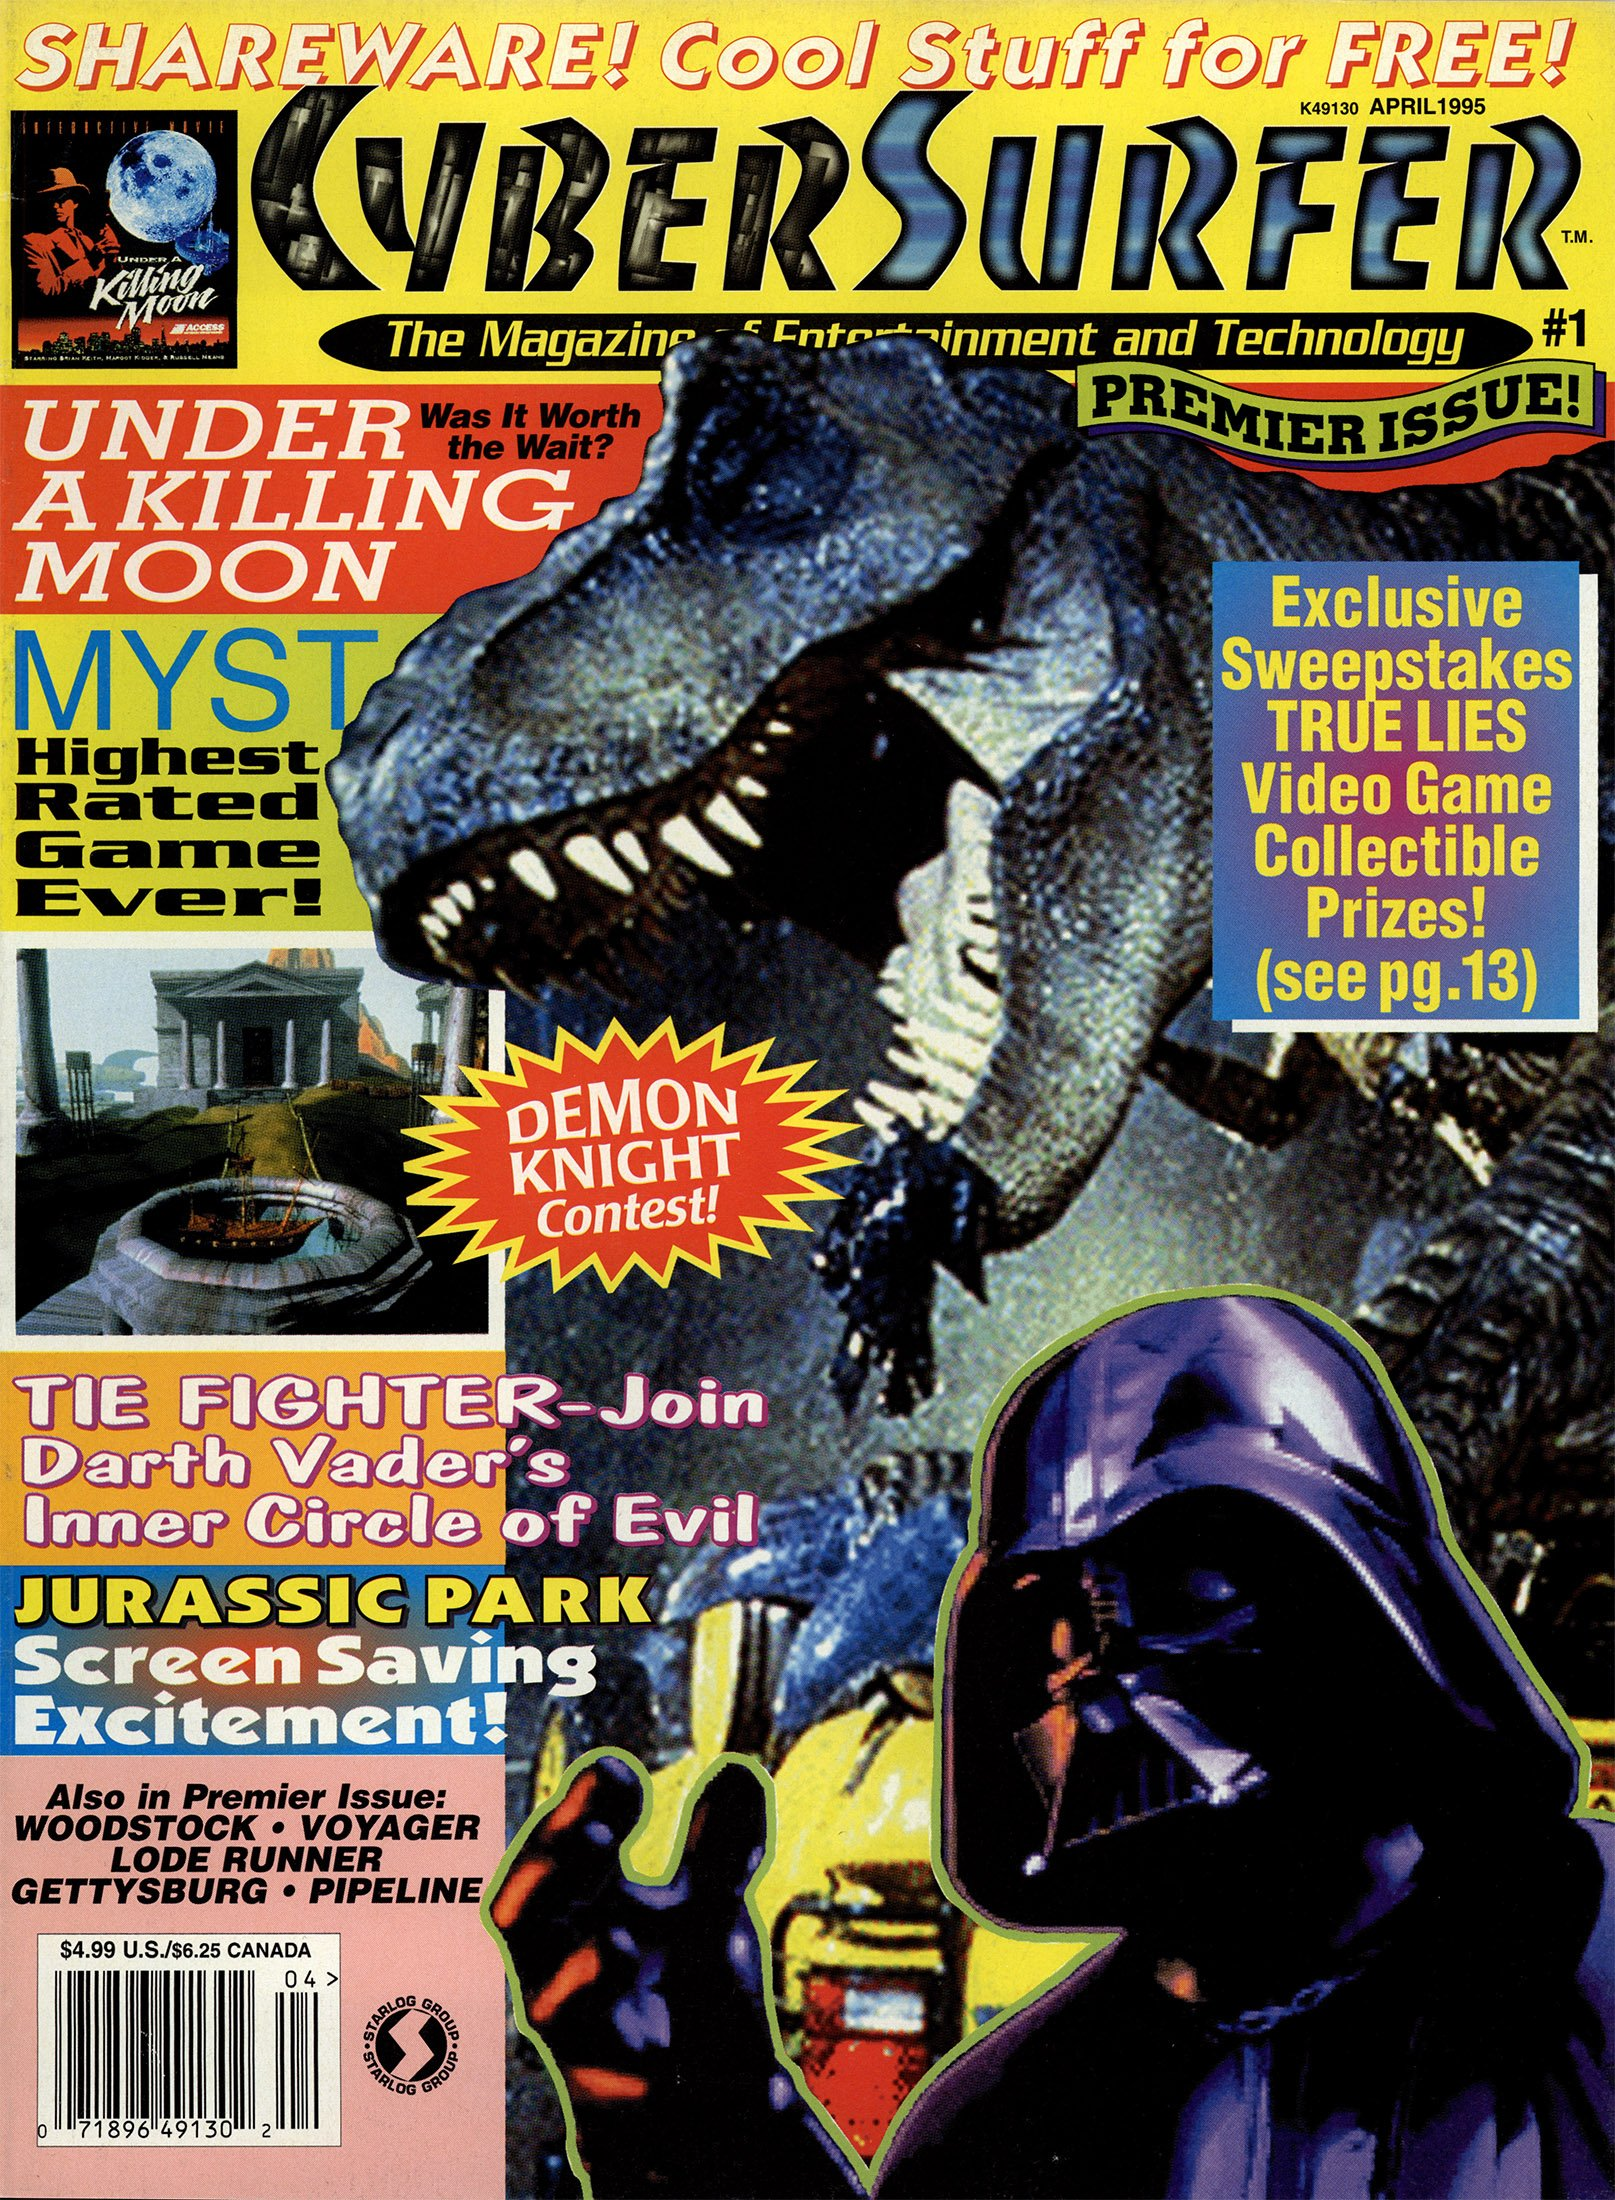 CyberSurfer Issue 01 (April 1995)